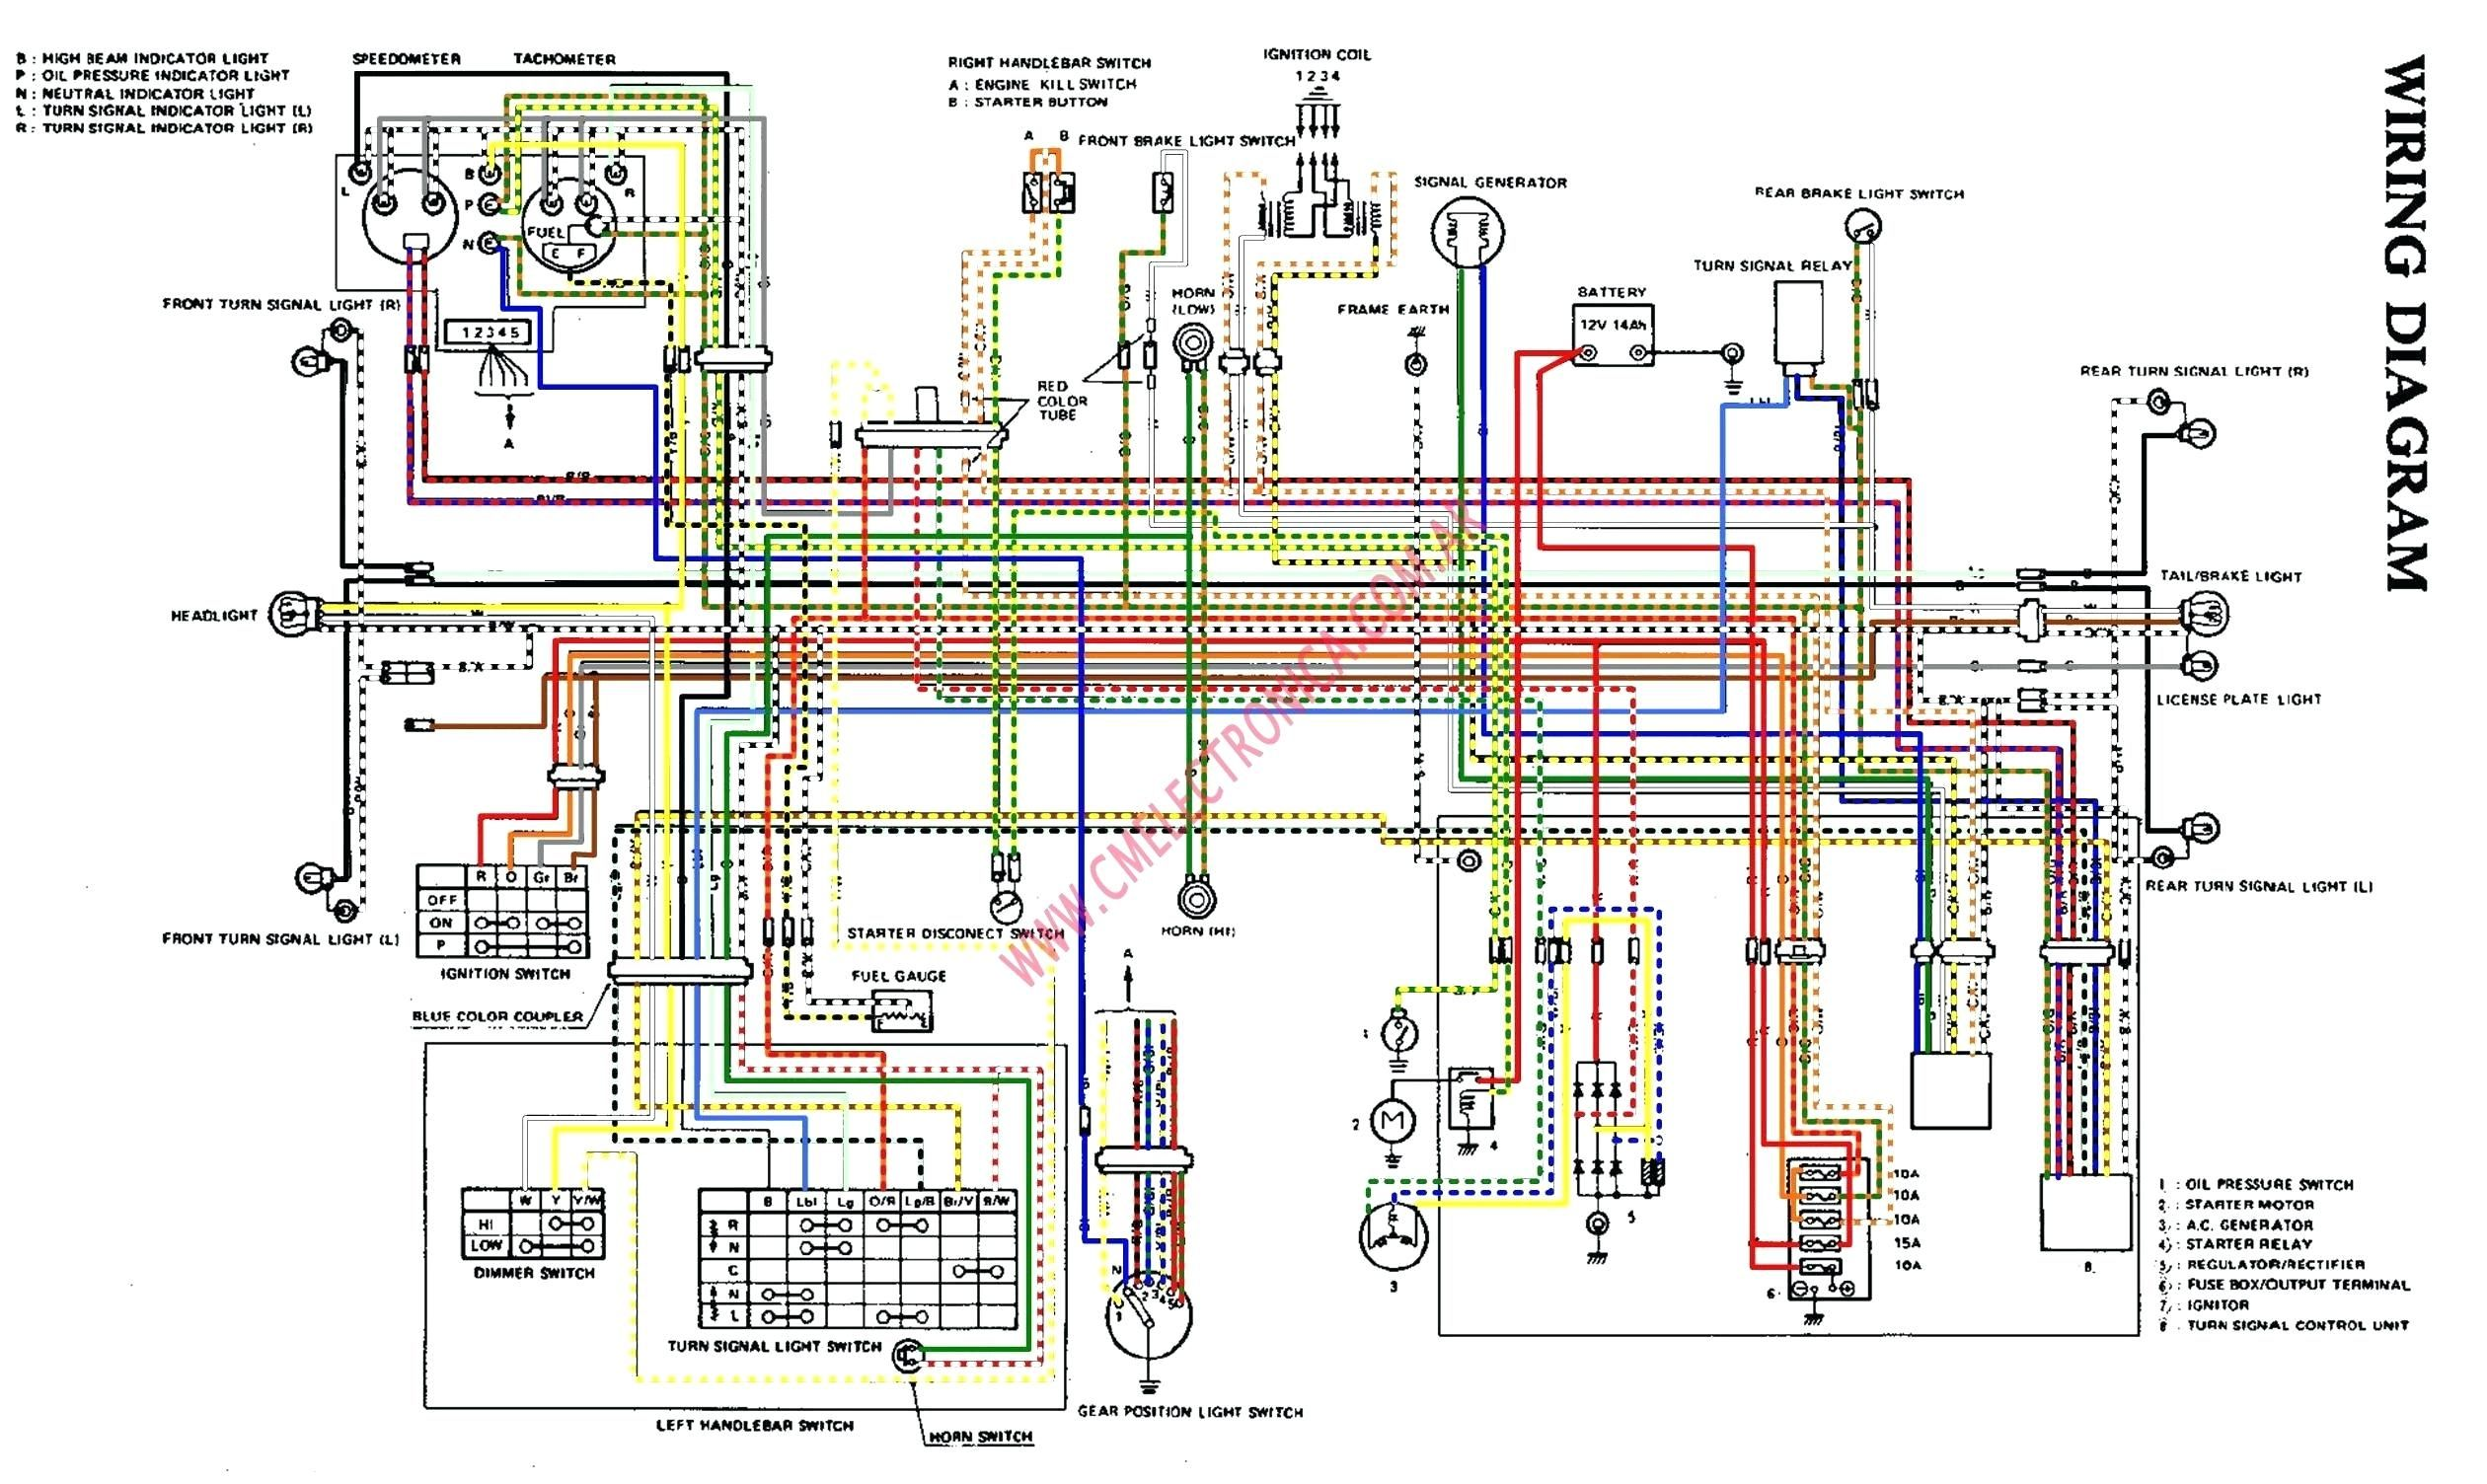 suzuki gs550 wiring diagram \u2013 volovets info motorcycle 50cc mini chopper chopper diagrams catalogue of schemas